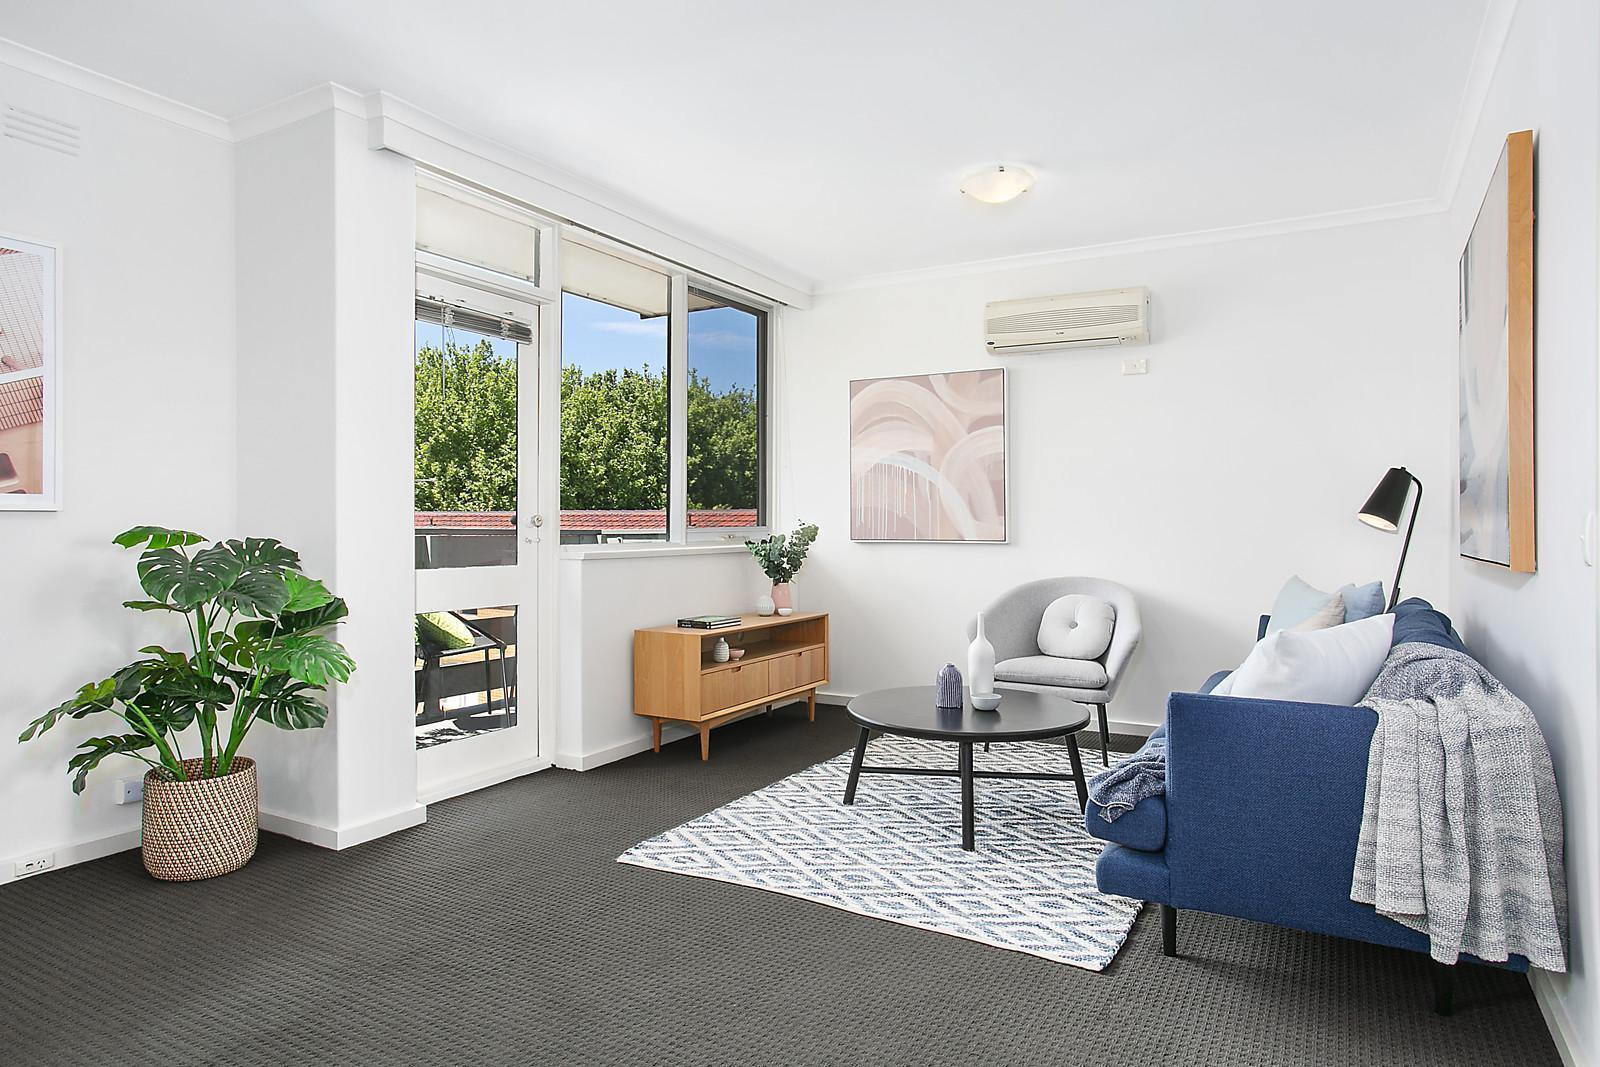 2 Bedroom Unit For Rent Melbourne 5 5 Mary Street St Kilda West Apartment For Sale